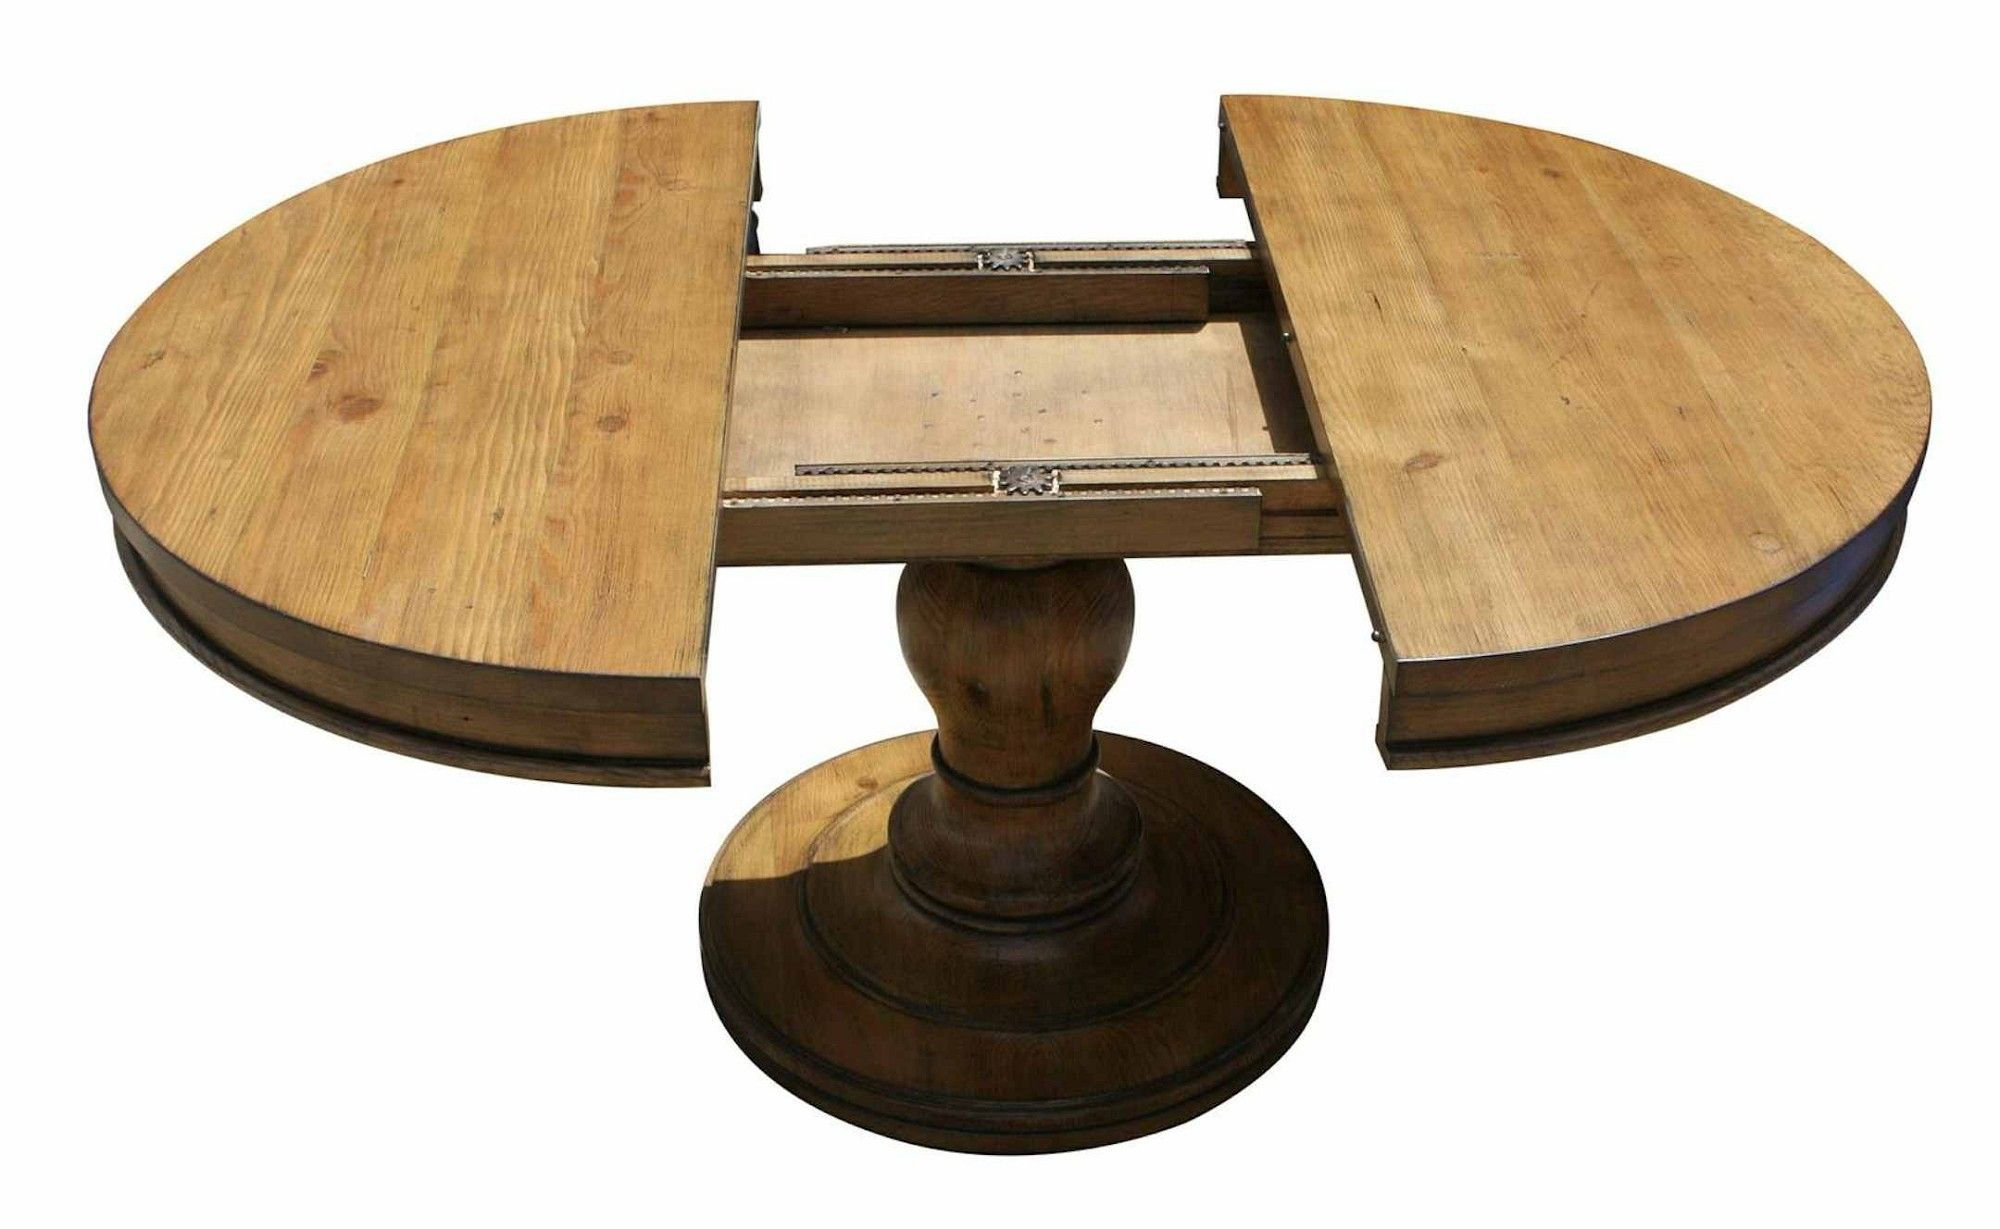 Dining room extraordinary wooden pedestal table for elegant look table ronde pinterest - Kitchen table expandable ...